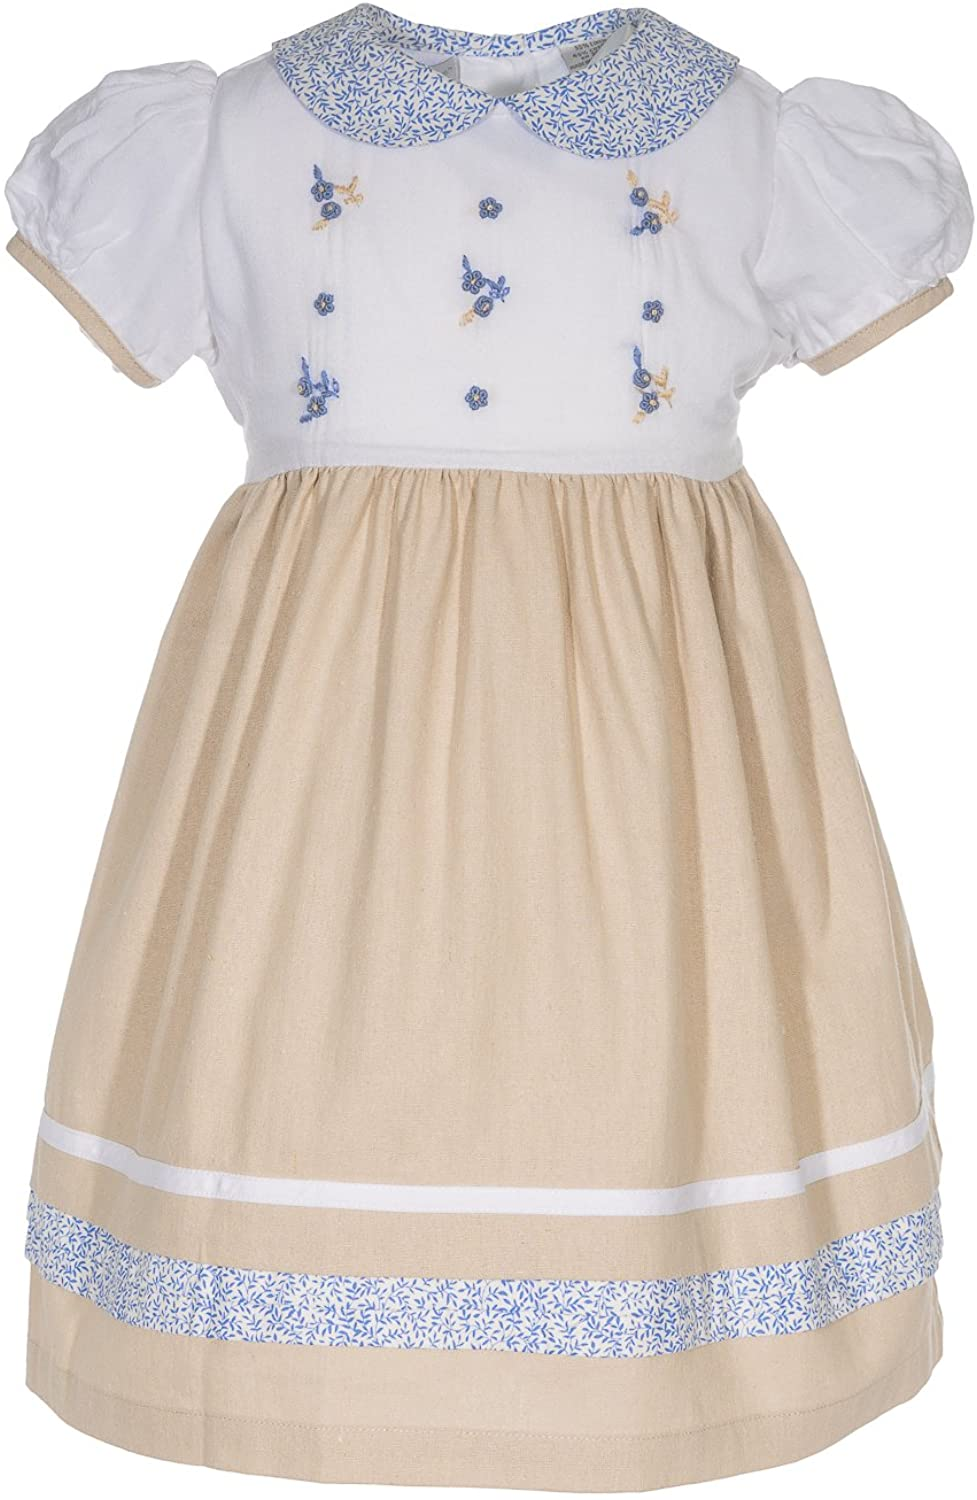 Carriage Boutique Girls Dress Tan and Blue Embroidered Flowers Short Sleeve Dress